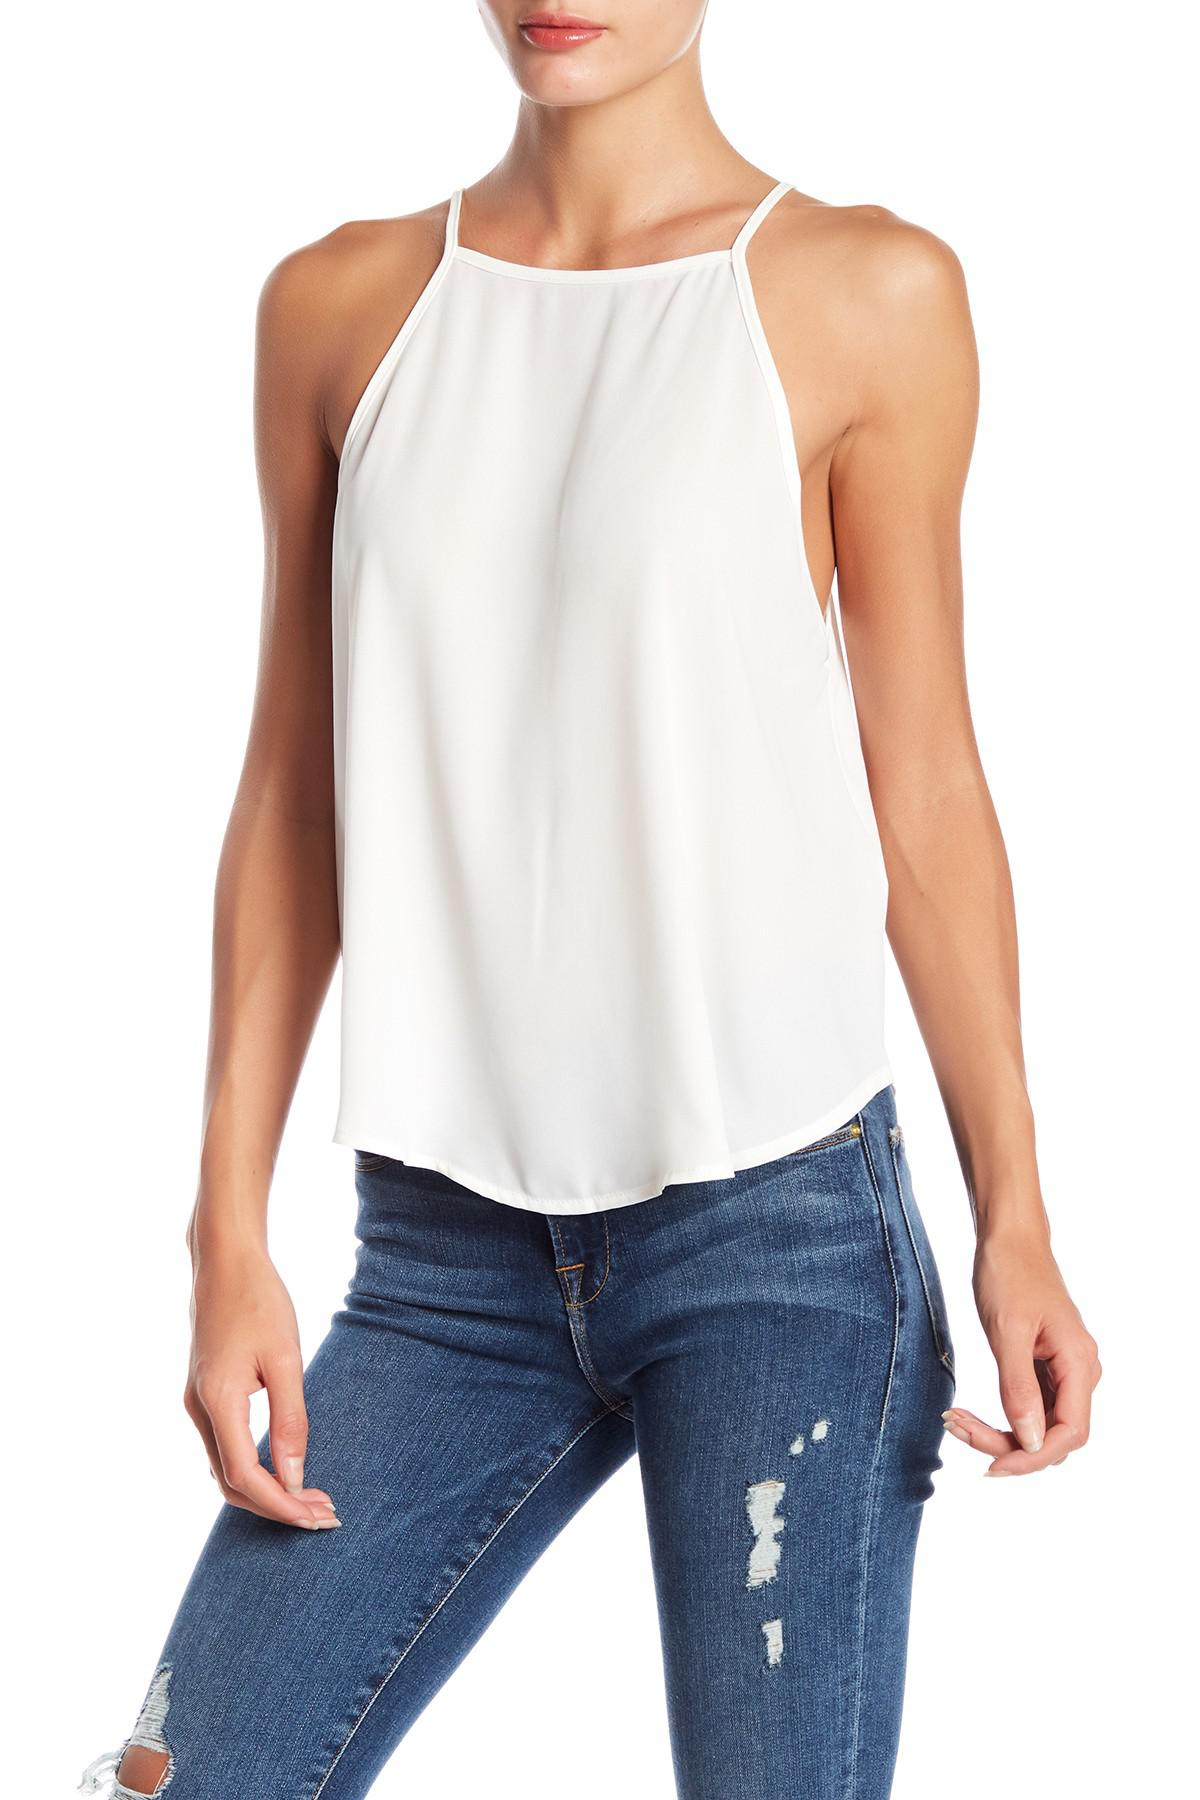 29f75848349f1 Lyst - Lush Woven Apron Neck Tank Top in White